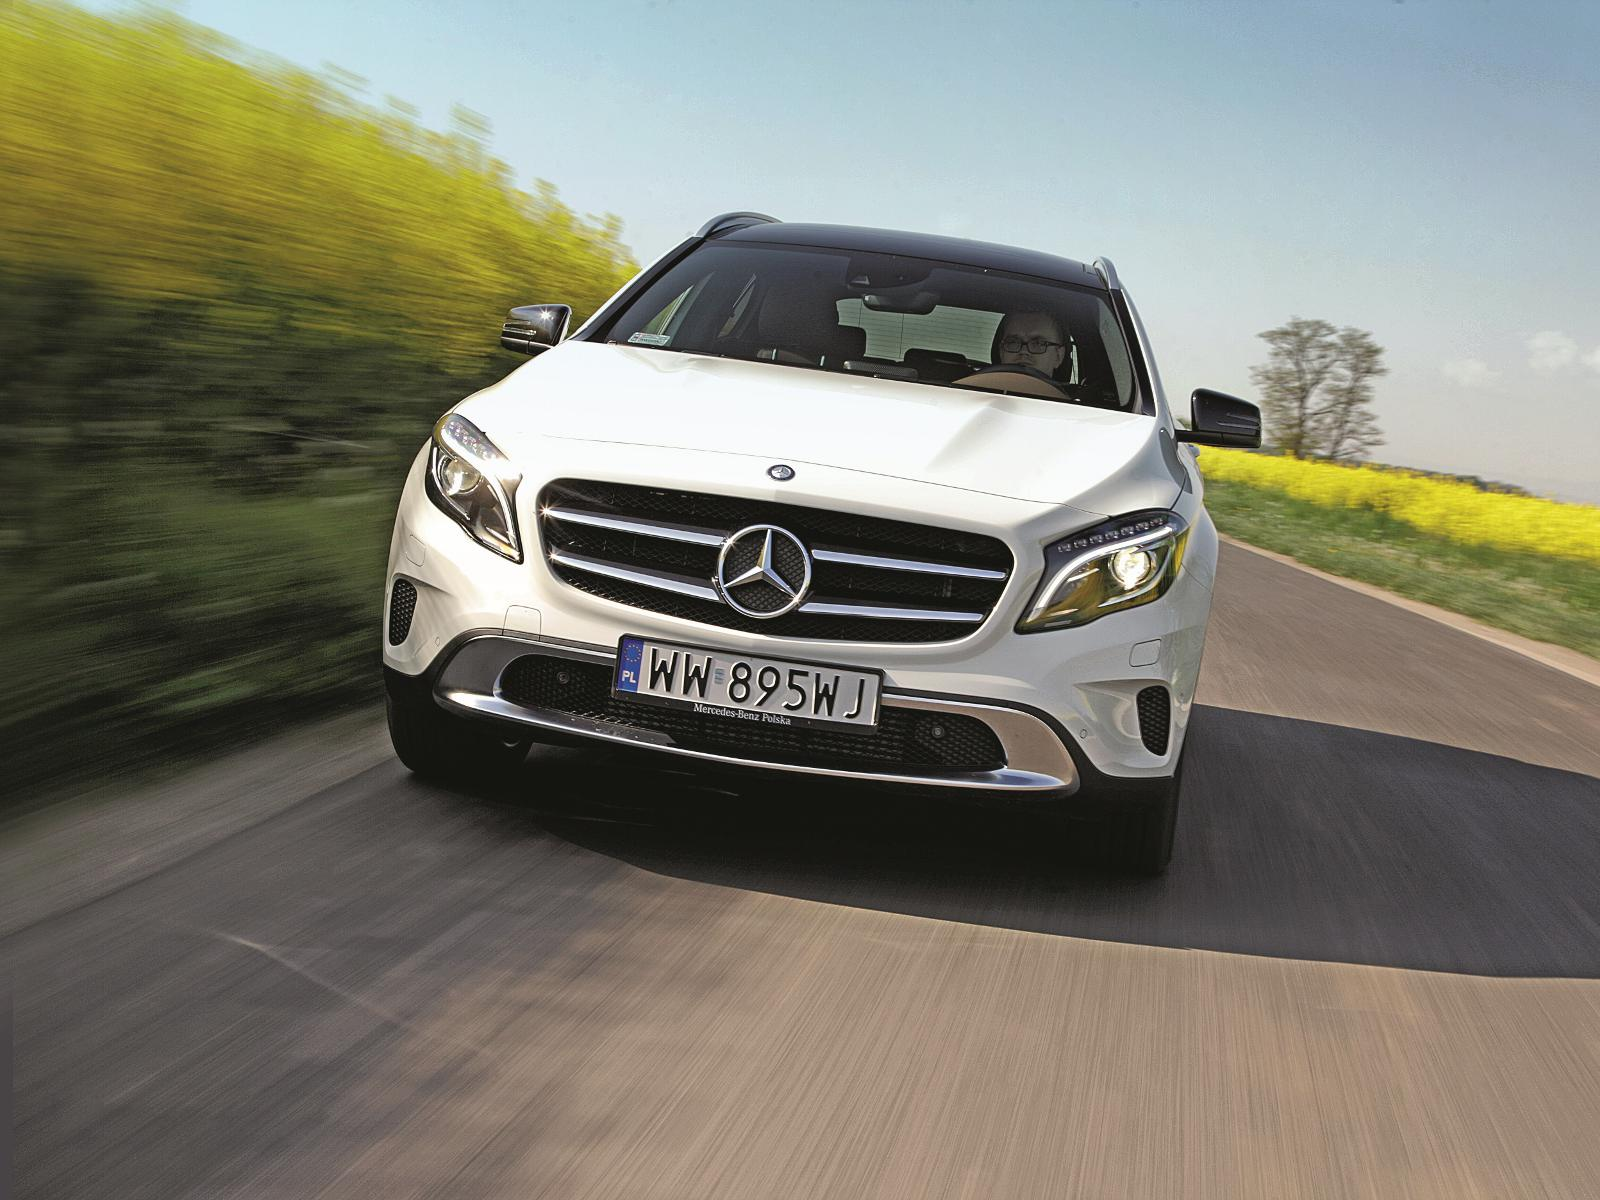 mercedes gla nowa gwiazda test w auto motor i sport. Black Bedroom Furniture Sets. Home Design Ideas